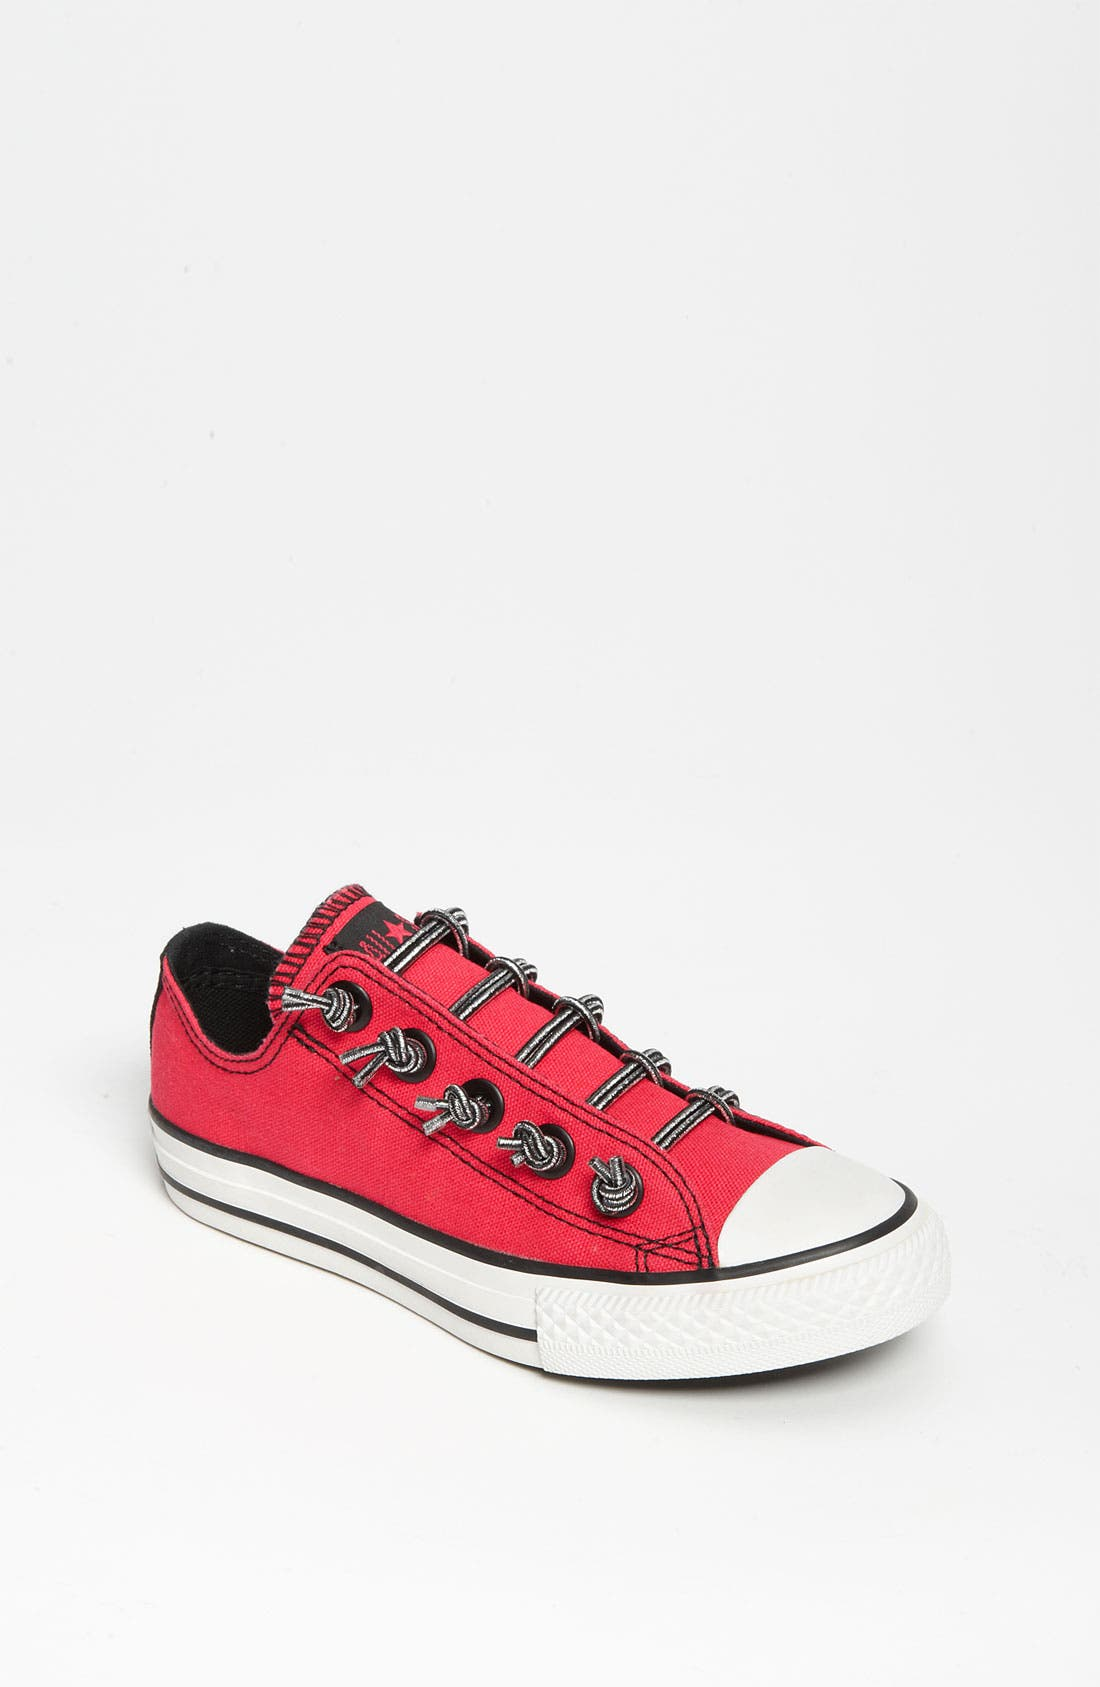 Alternate Image 1 Selected - Converse 'Loop 2 Knot' Sneaker (Toddler, Little Kid & Big Kid)